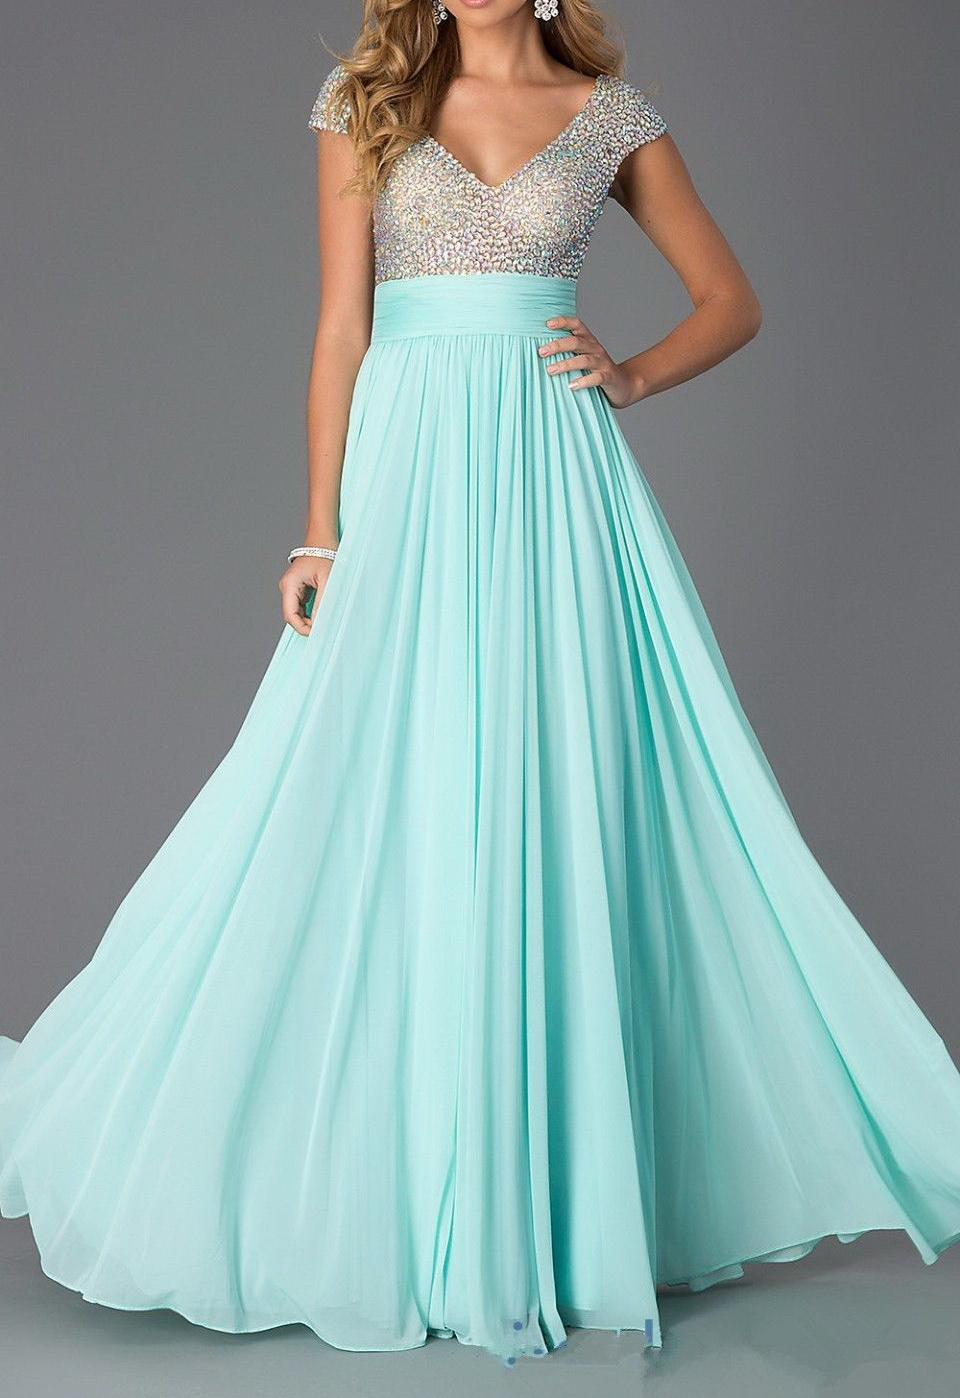 Sequin Prom Dresses, Mint Prom Dresses, Tulle Prom Dresses ,Long ...